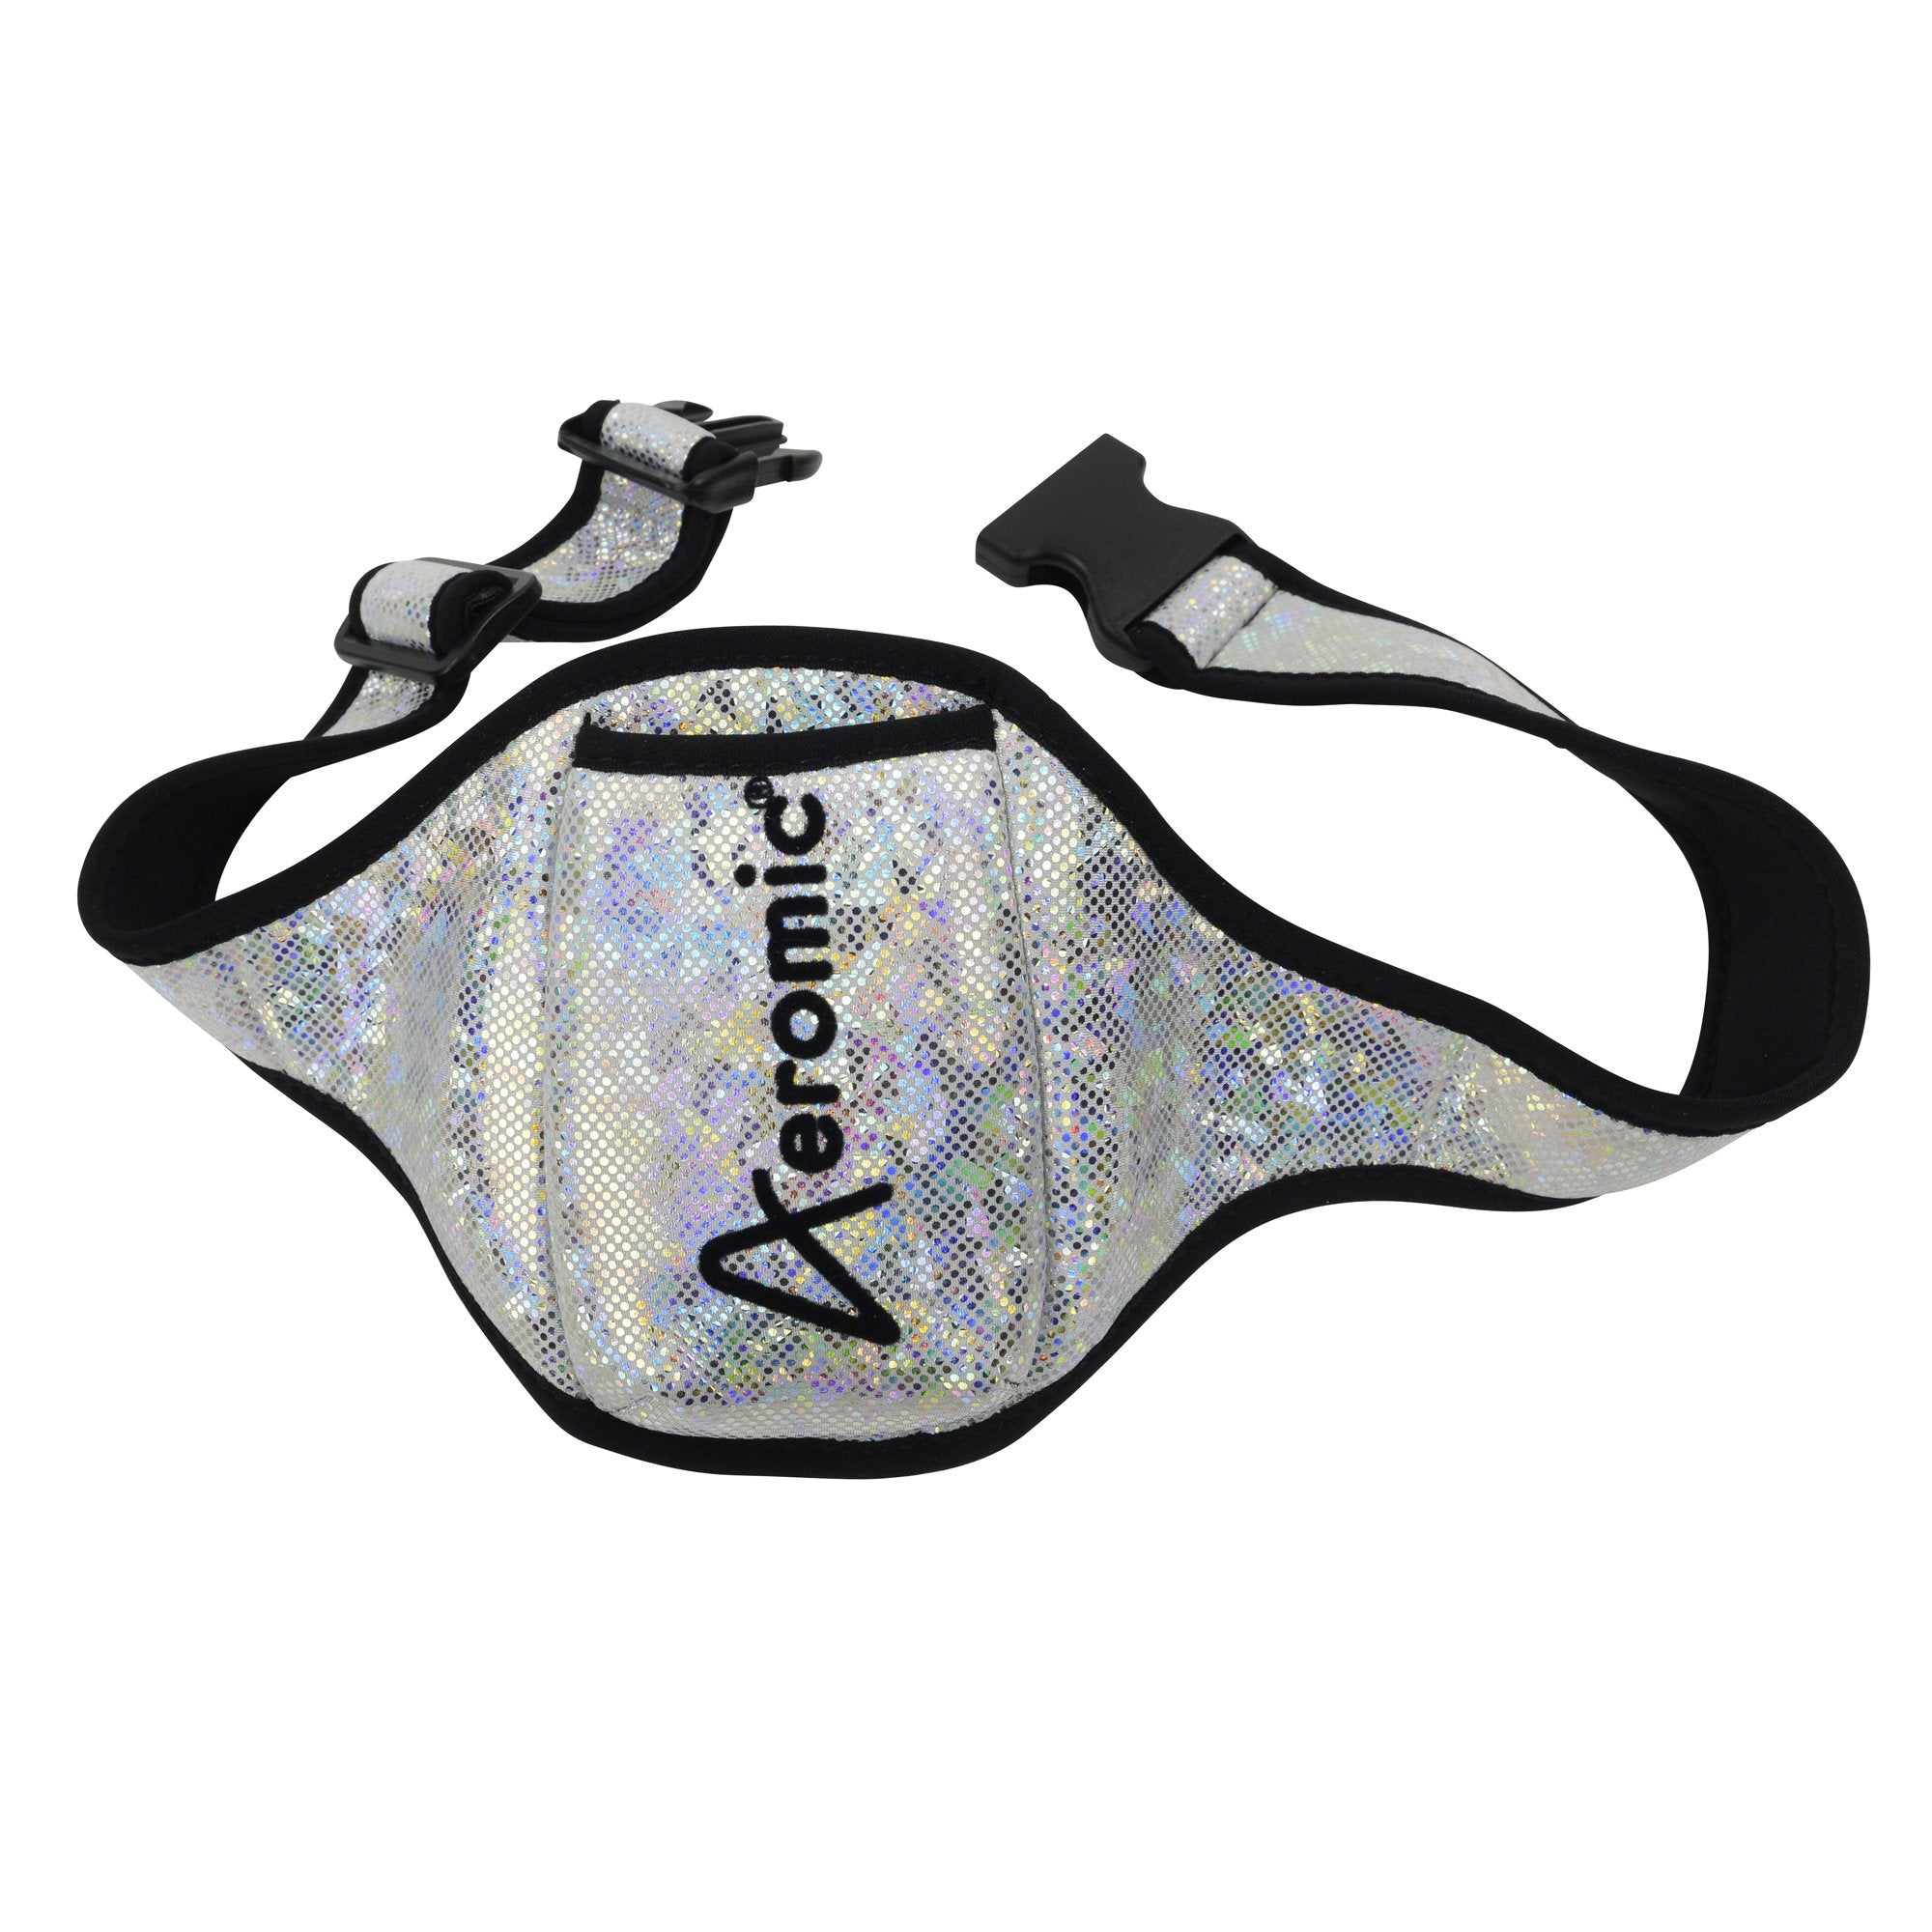 Aeromic Bling Pouchbelts